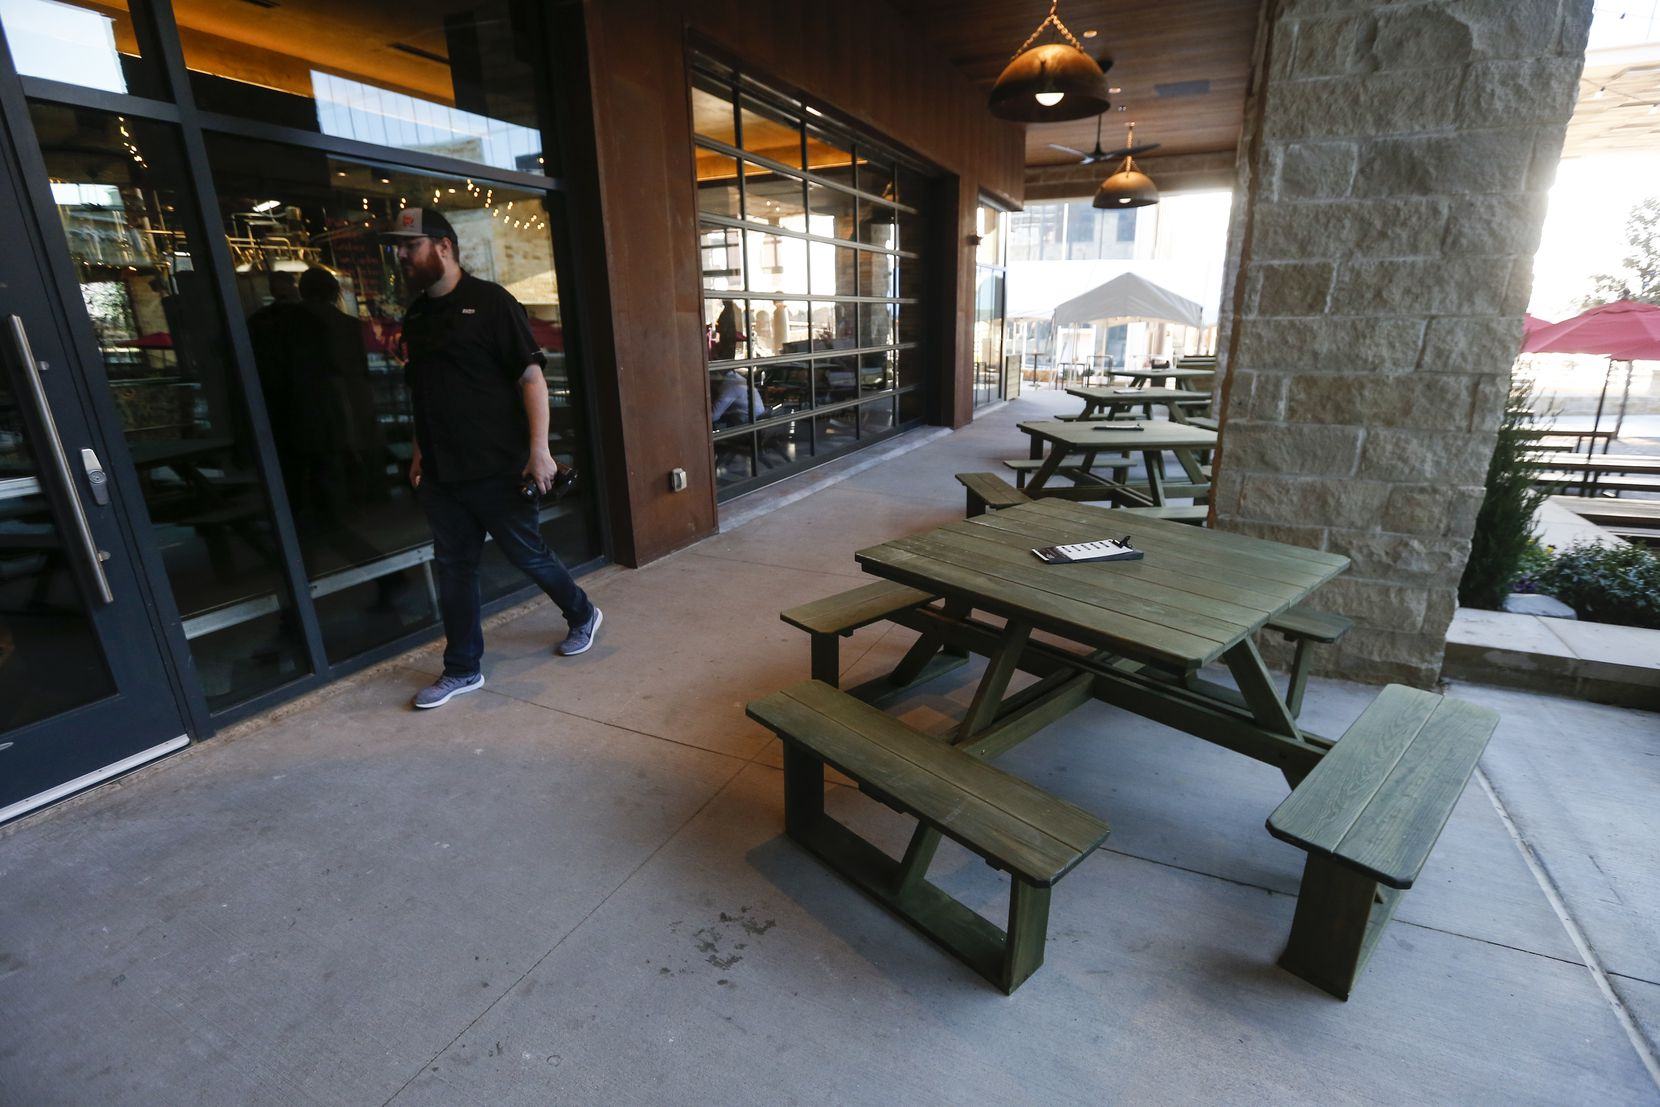 Revolver Brewing BLDG 5 is a new working brewery at Texas Live in Arlington.